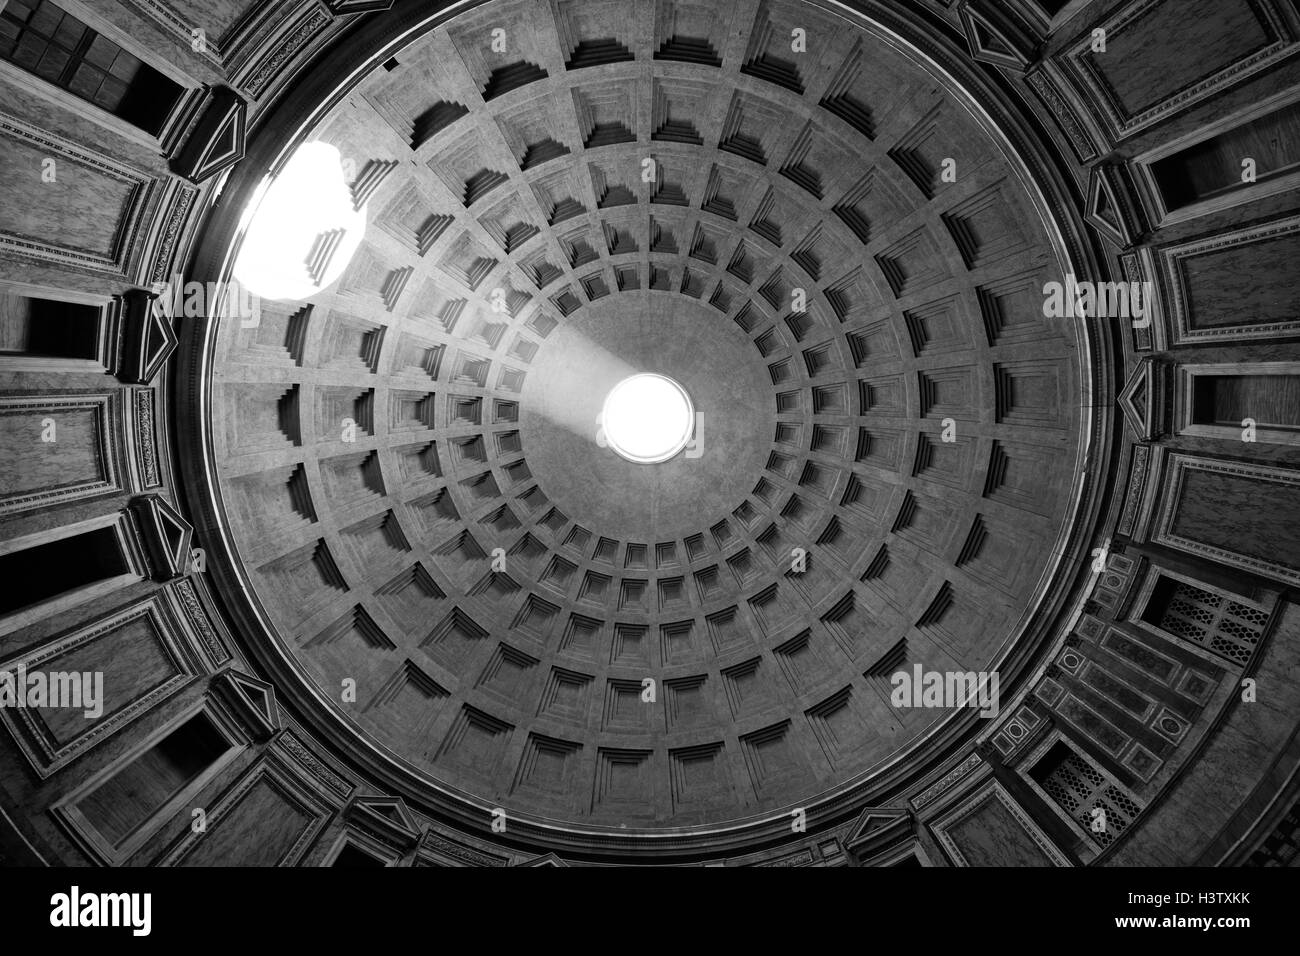 The sun illuminates the inside of the ceiling through the hole at the top of the Pantheon in Rome, Italy - Stock Image